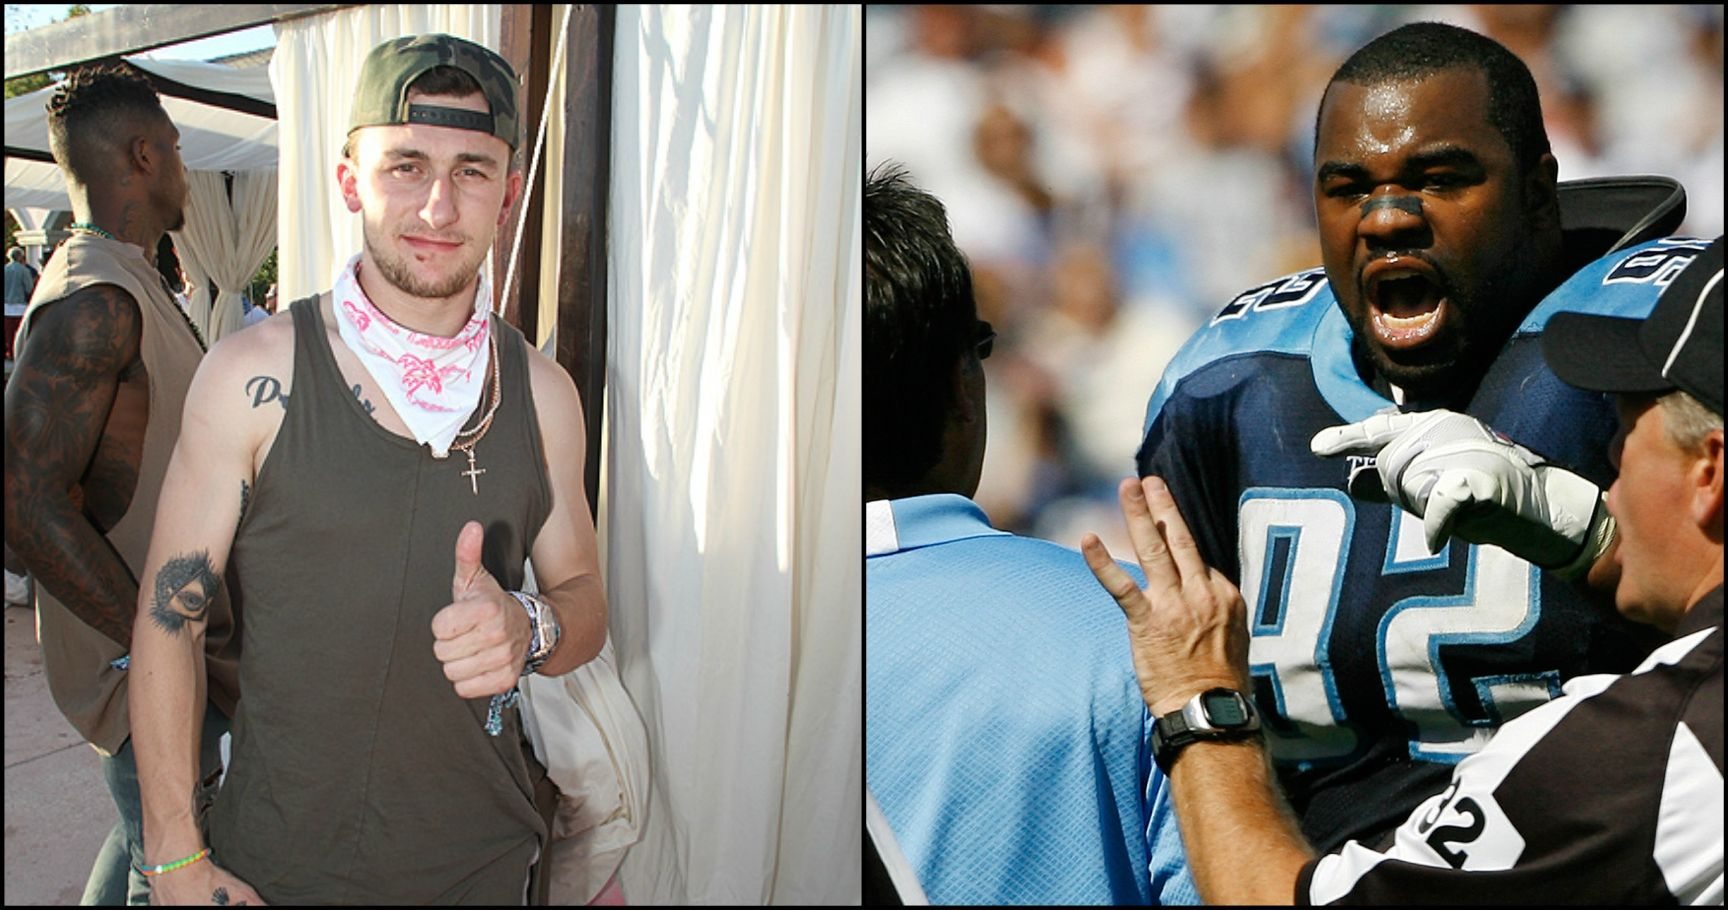 11 More NFL Players Who Are Actually Terrible People